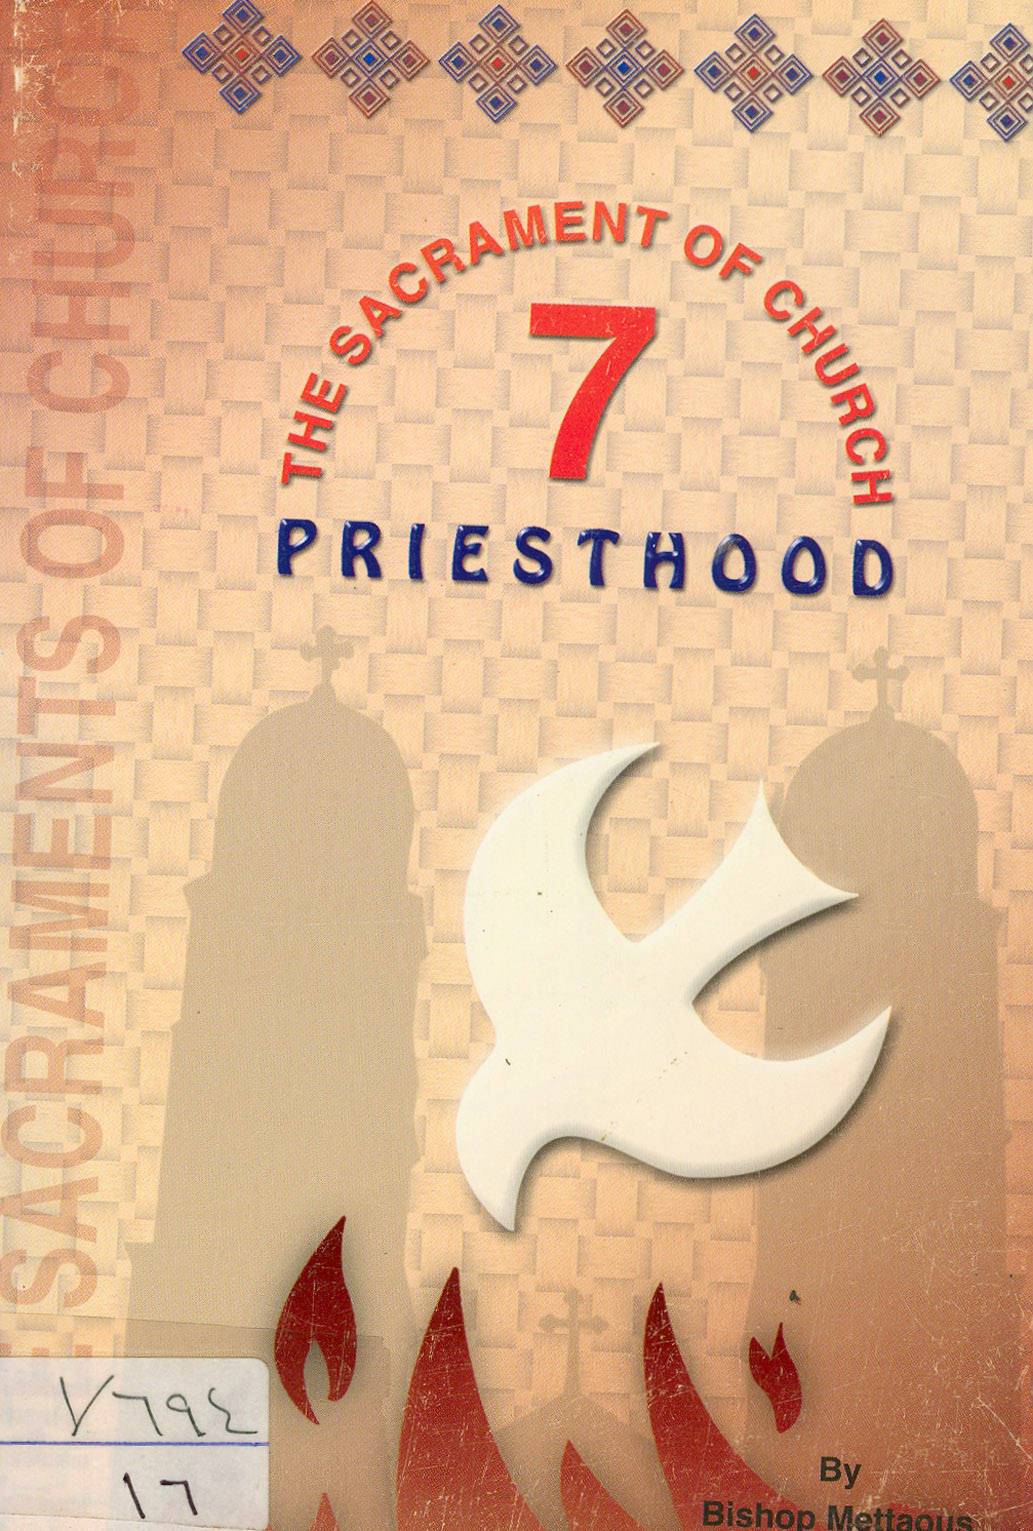 Cover of The Sacrament Of Church Priesthood